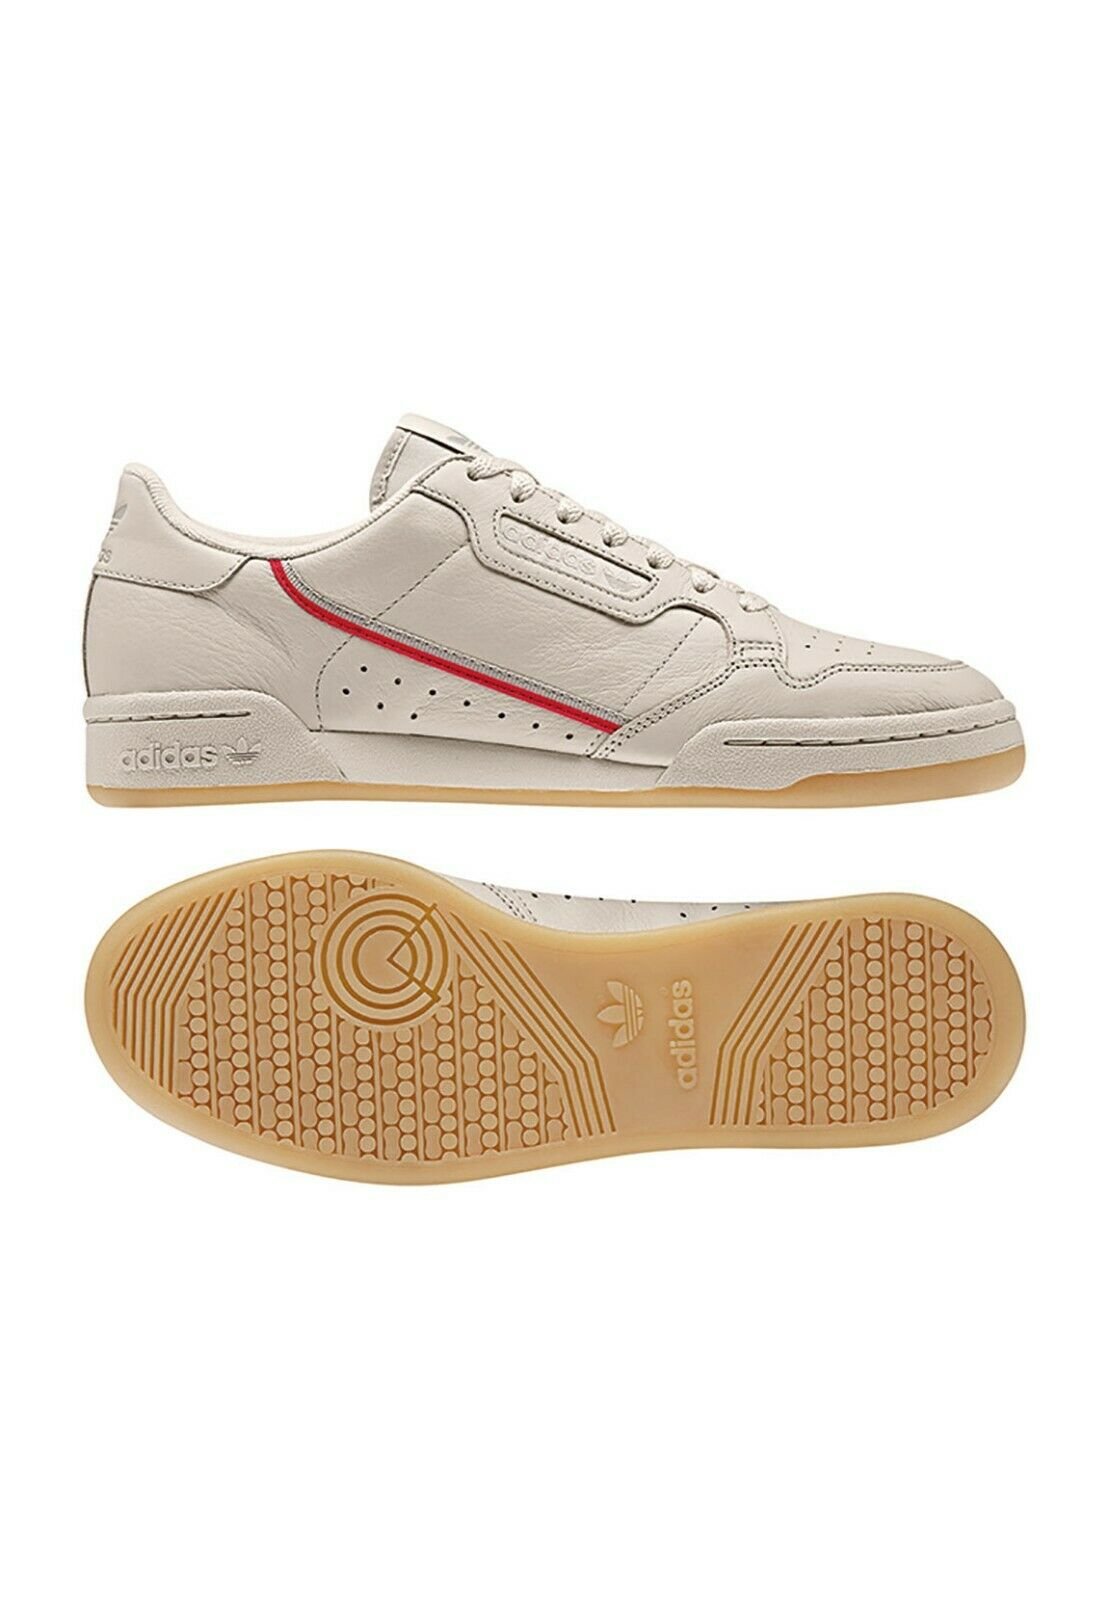 Adidas Original Continental 80 (BD7606) Classic shoes Athletic Sneakers